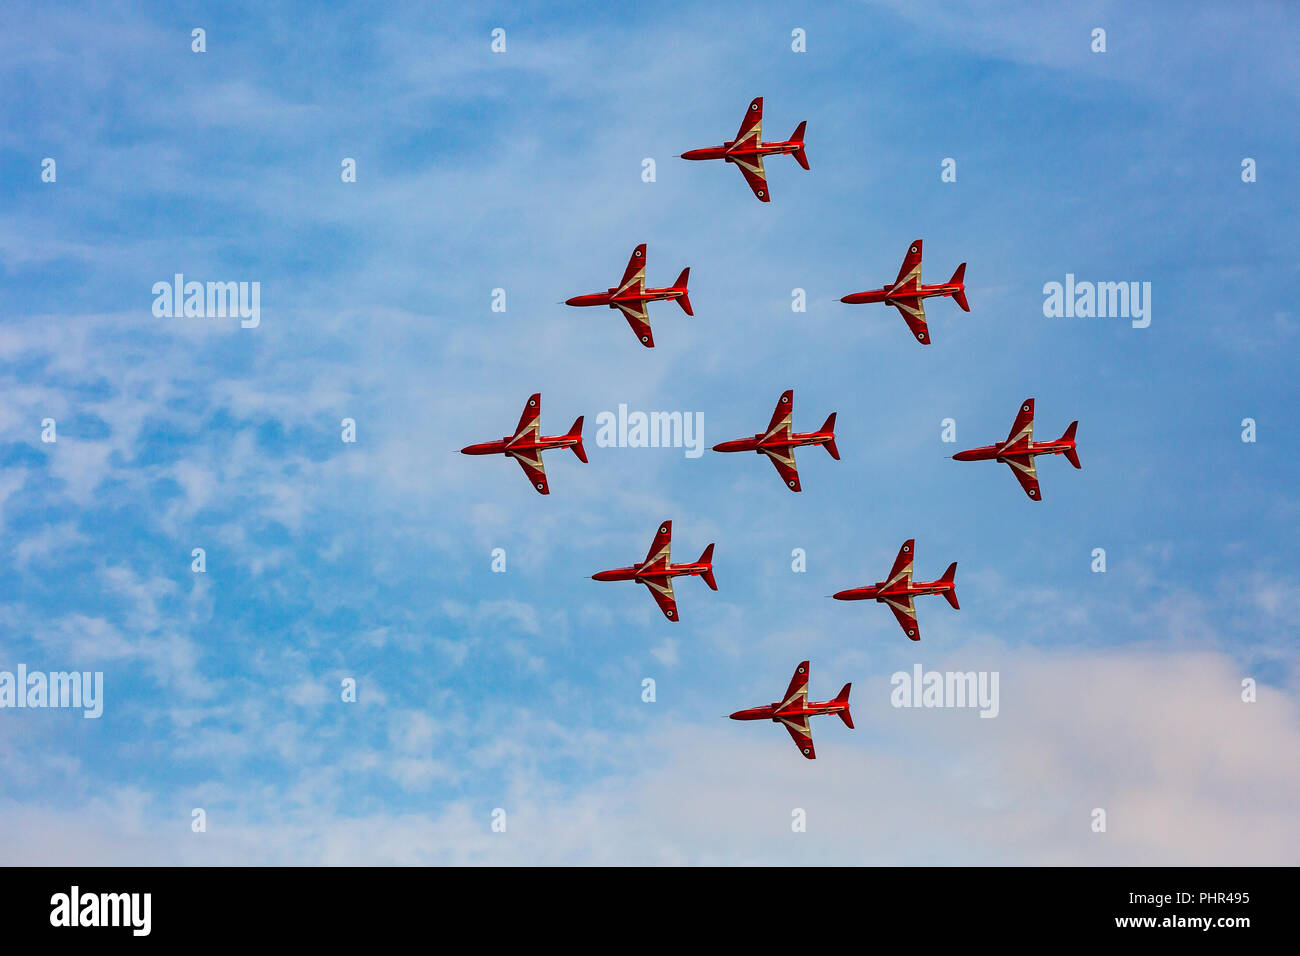 UK Bournemouth Air Festival in its 10th year, crowds flock to see the amazing displays, by the Red Arrows and Sally B flying fortress. 30th August 18 - Stock Image